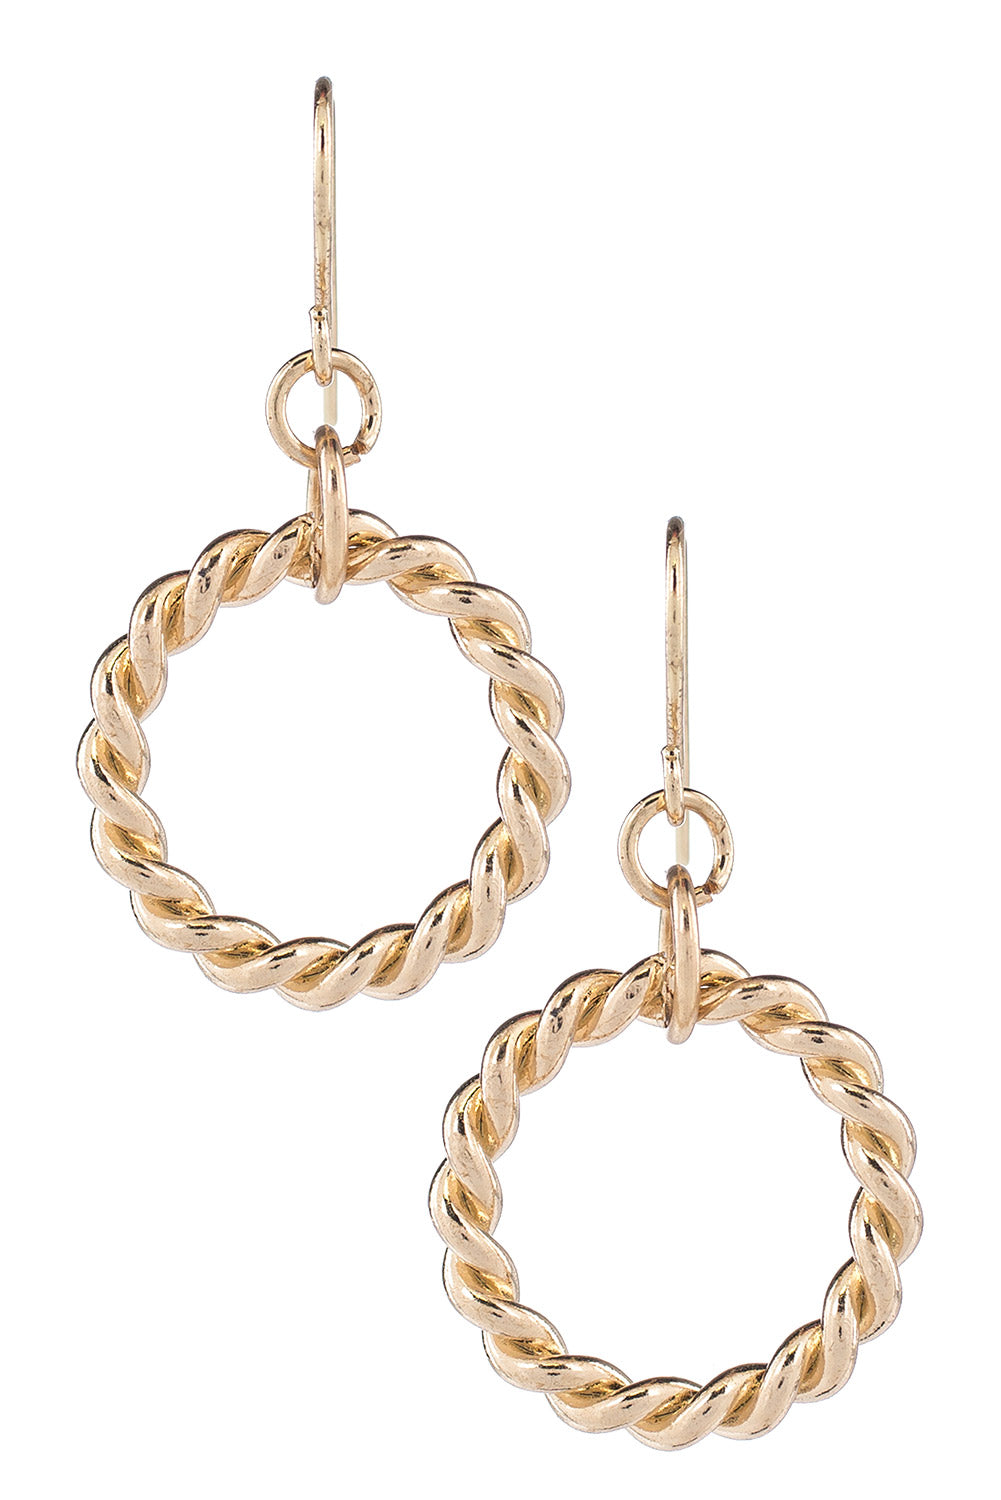 Type 1 Lasso Earrings